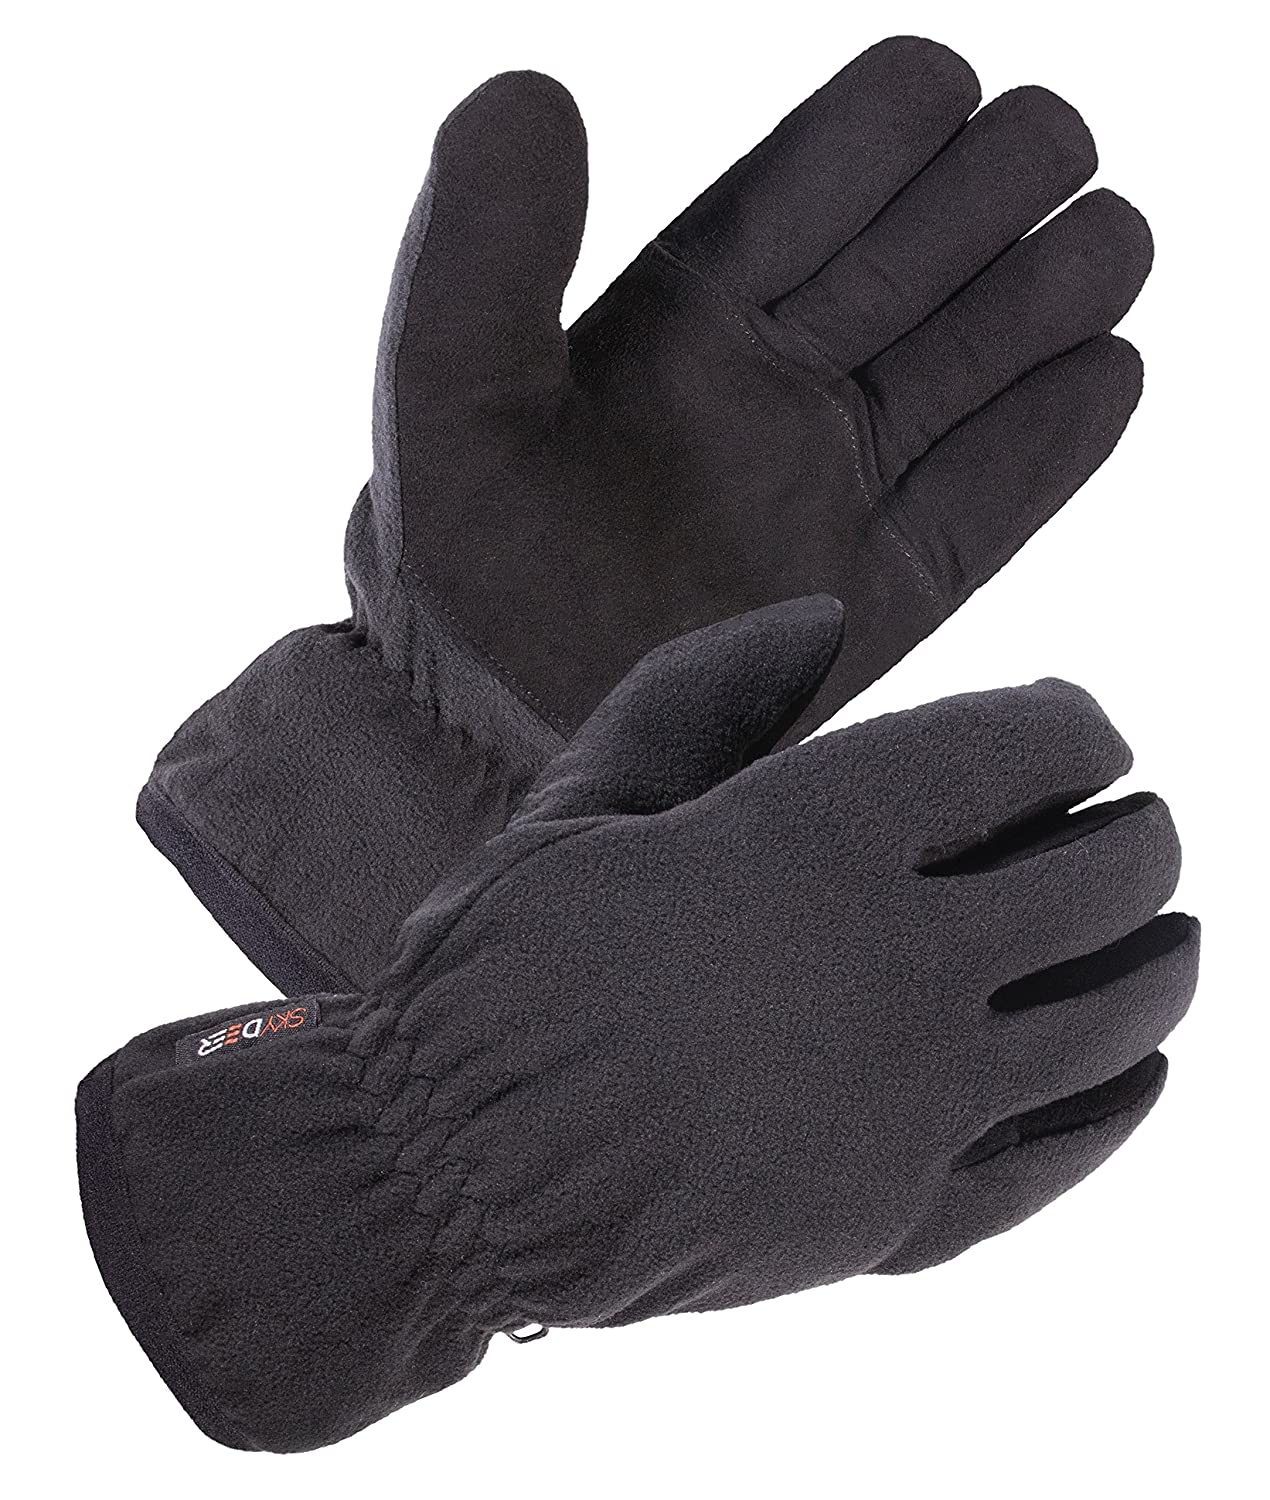 SKYDEERE Winter Running Gloves - Heated Soft Deerskin Warm Leather and Fleece Glove, with 3M Thinsulate Insulation Suitable for Outdoor Sport and Keep Warm in Cold Weather (Gray Medium) SKYDEER CO. SD8662T/M